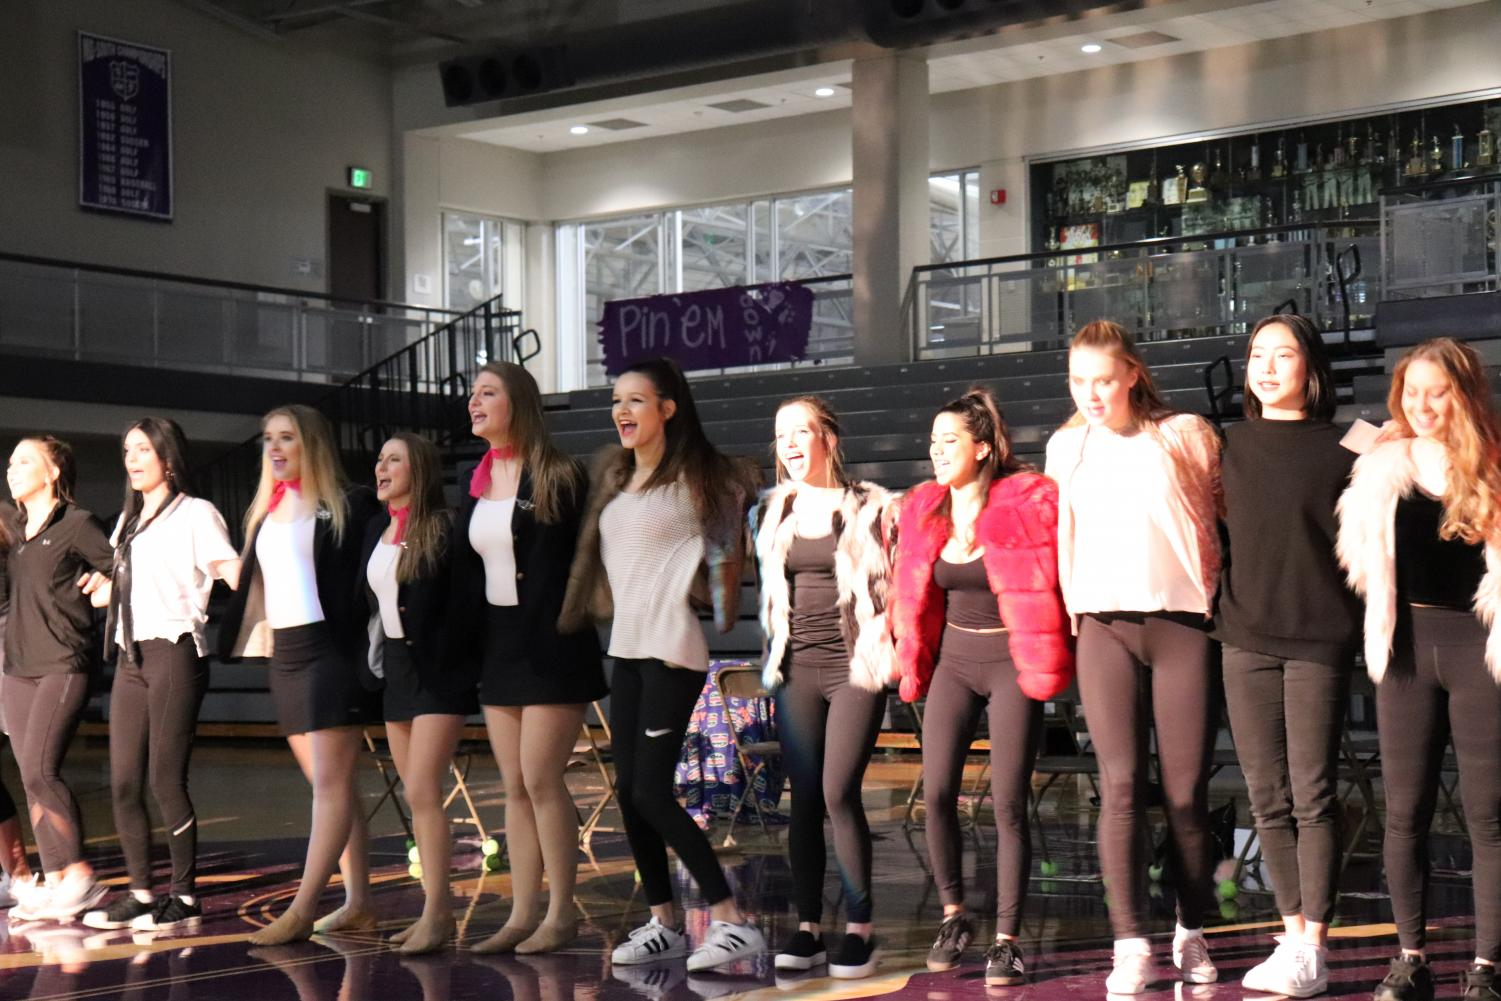 The+Thornwood+girls+dance+in+a+line.+